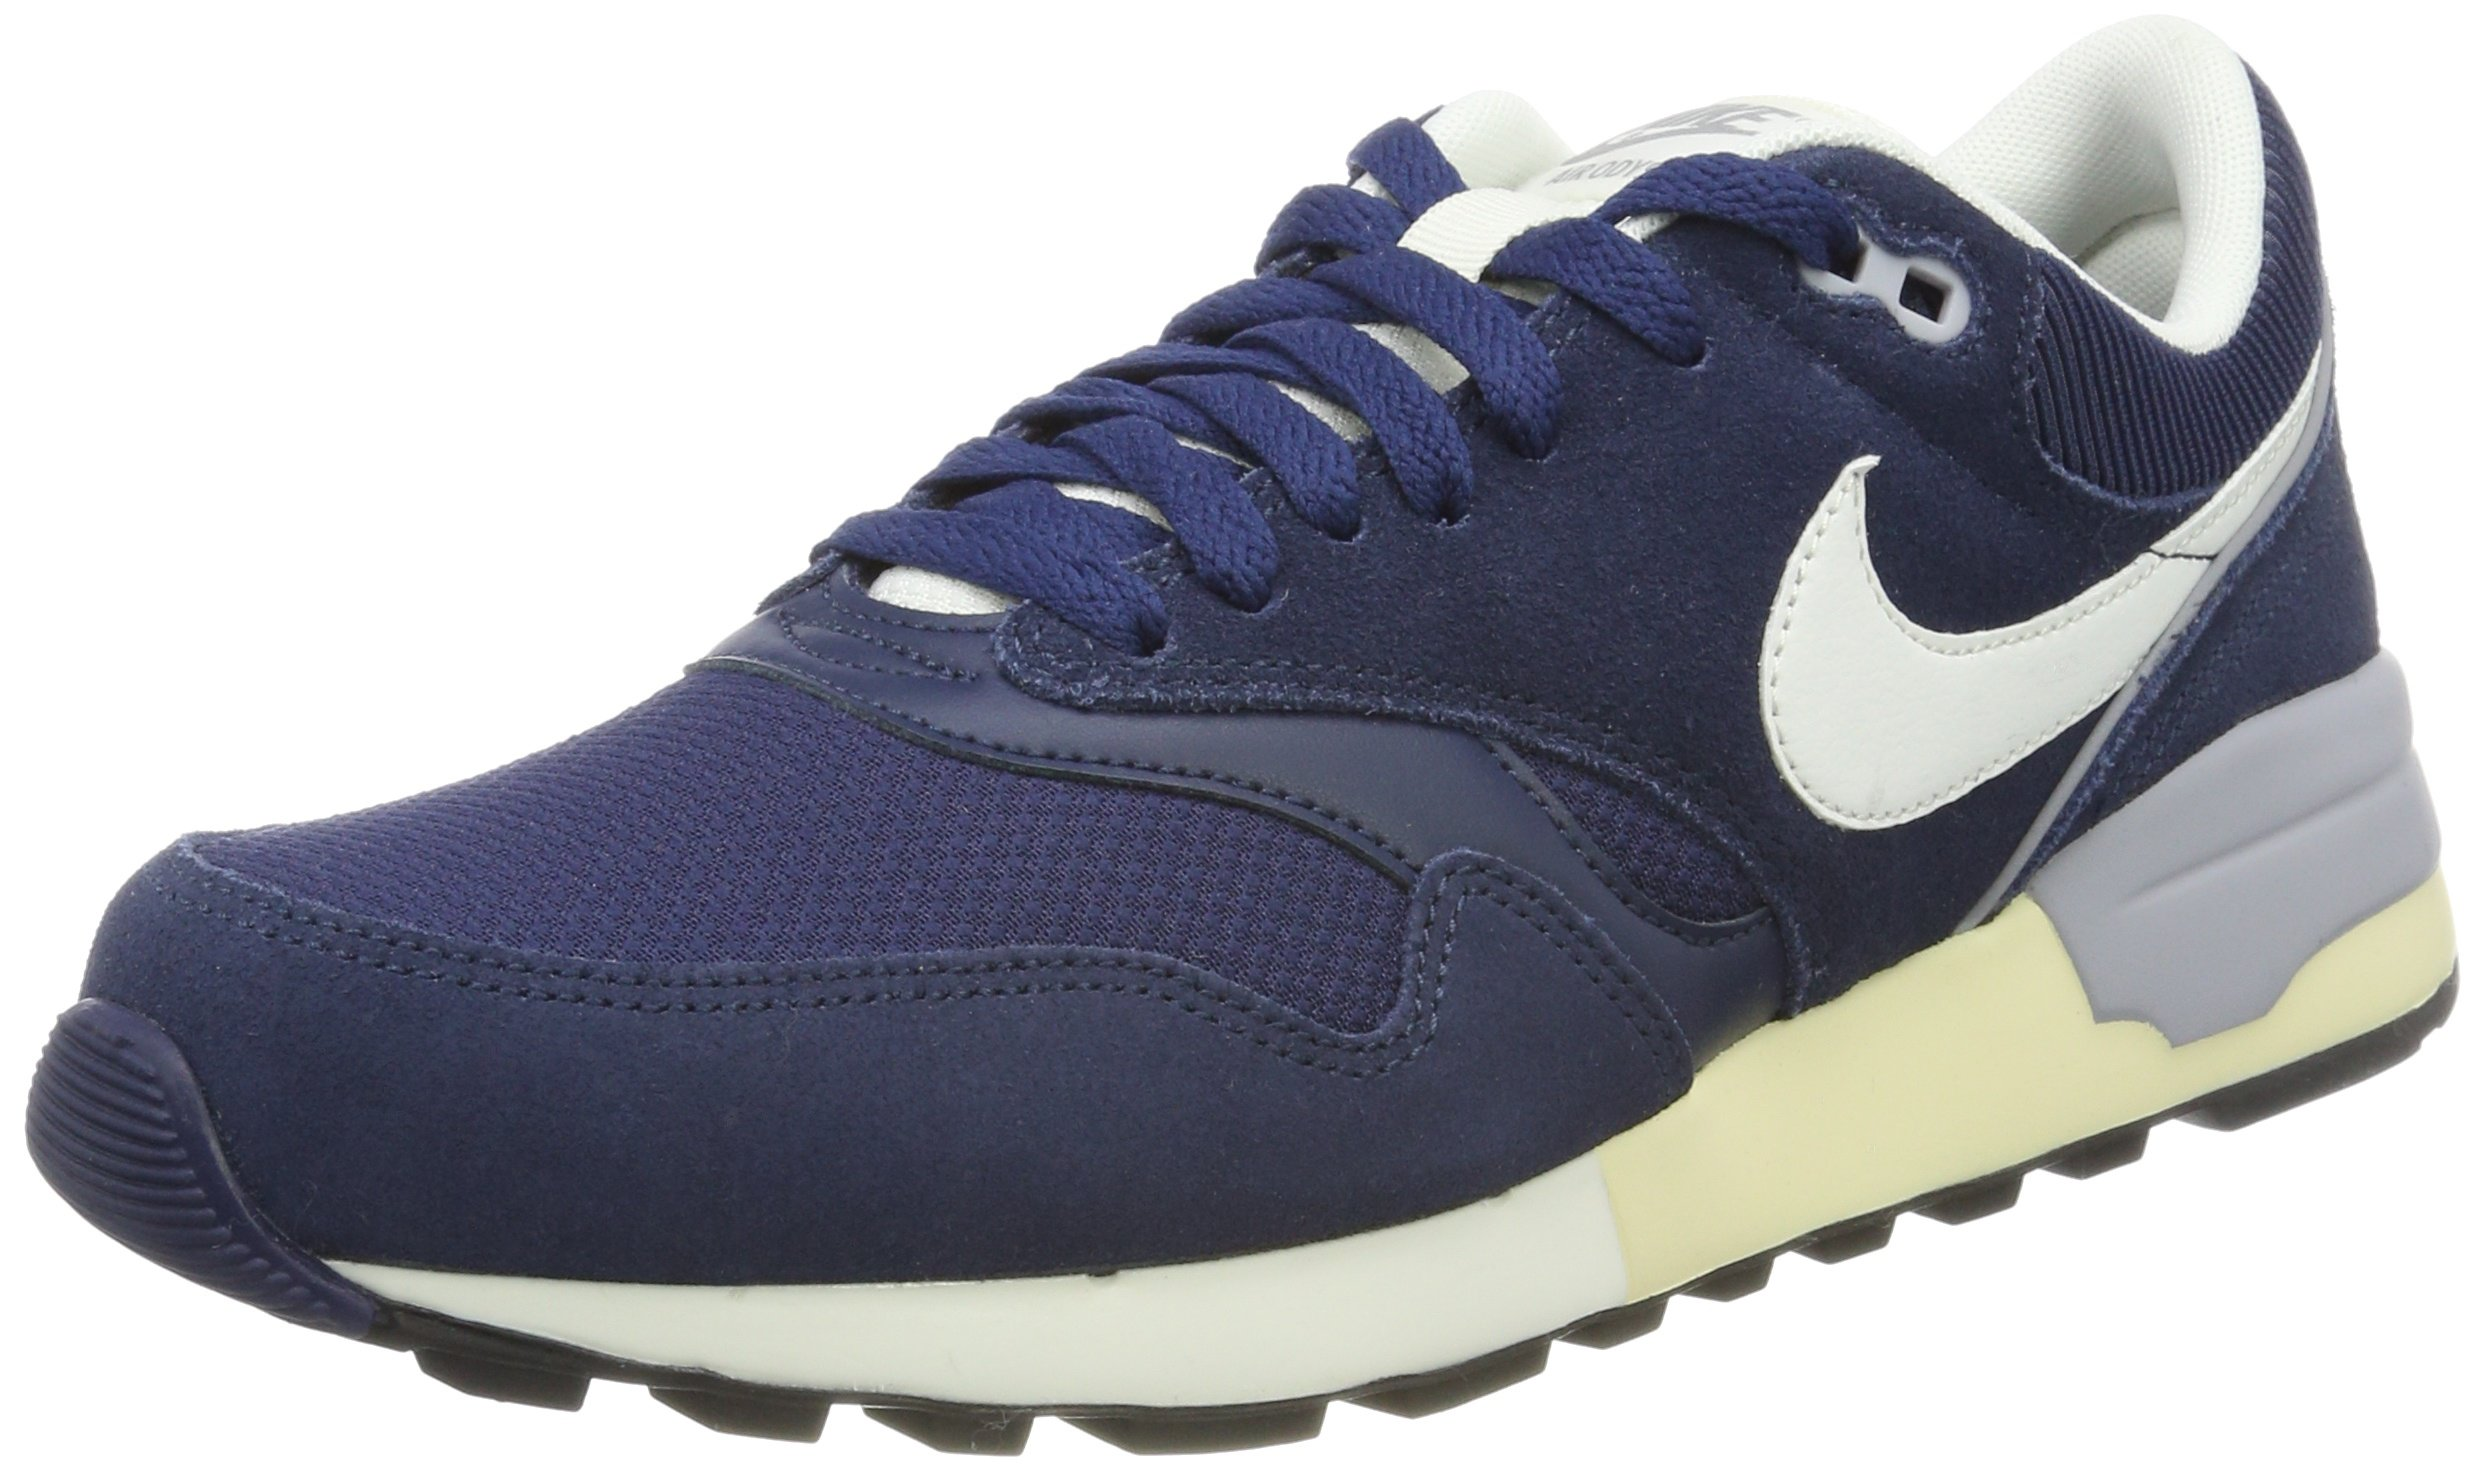 official photos a7e00 5aebe Galleon - Nike AIR ODYSSEY Mens Fashion-sneakers 652989-403 8 - MIDNIGHT  NAVY SAIL-SAIL-WOLF GREY